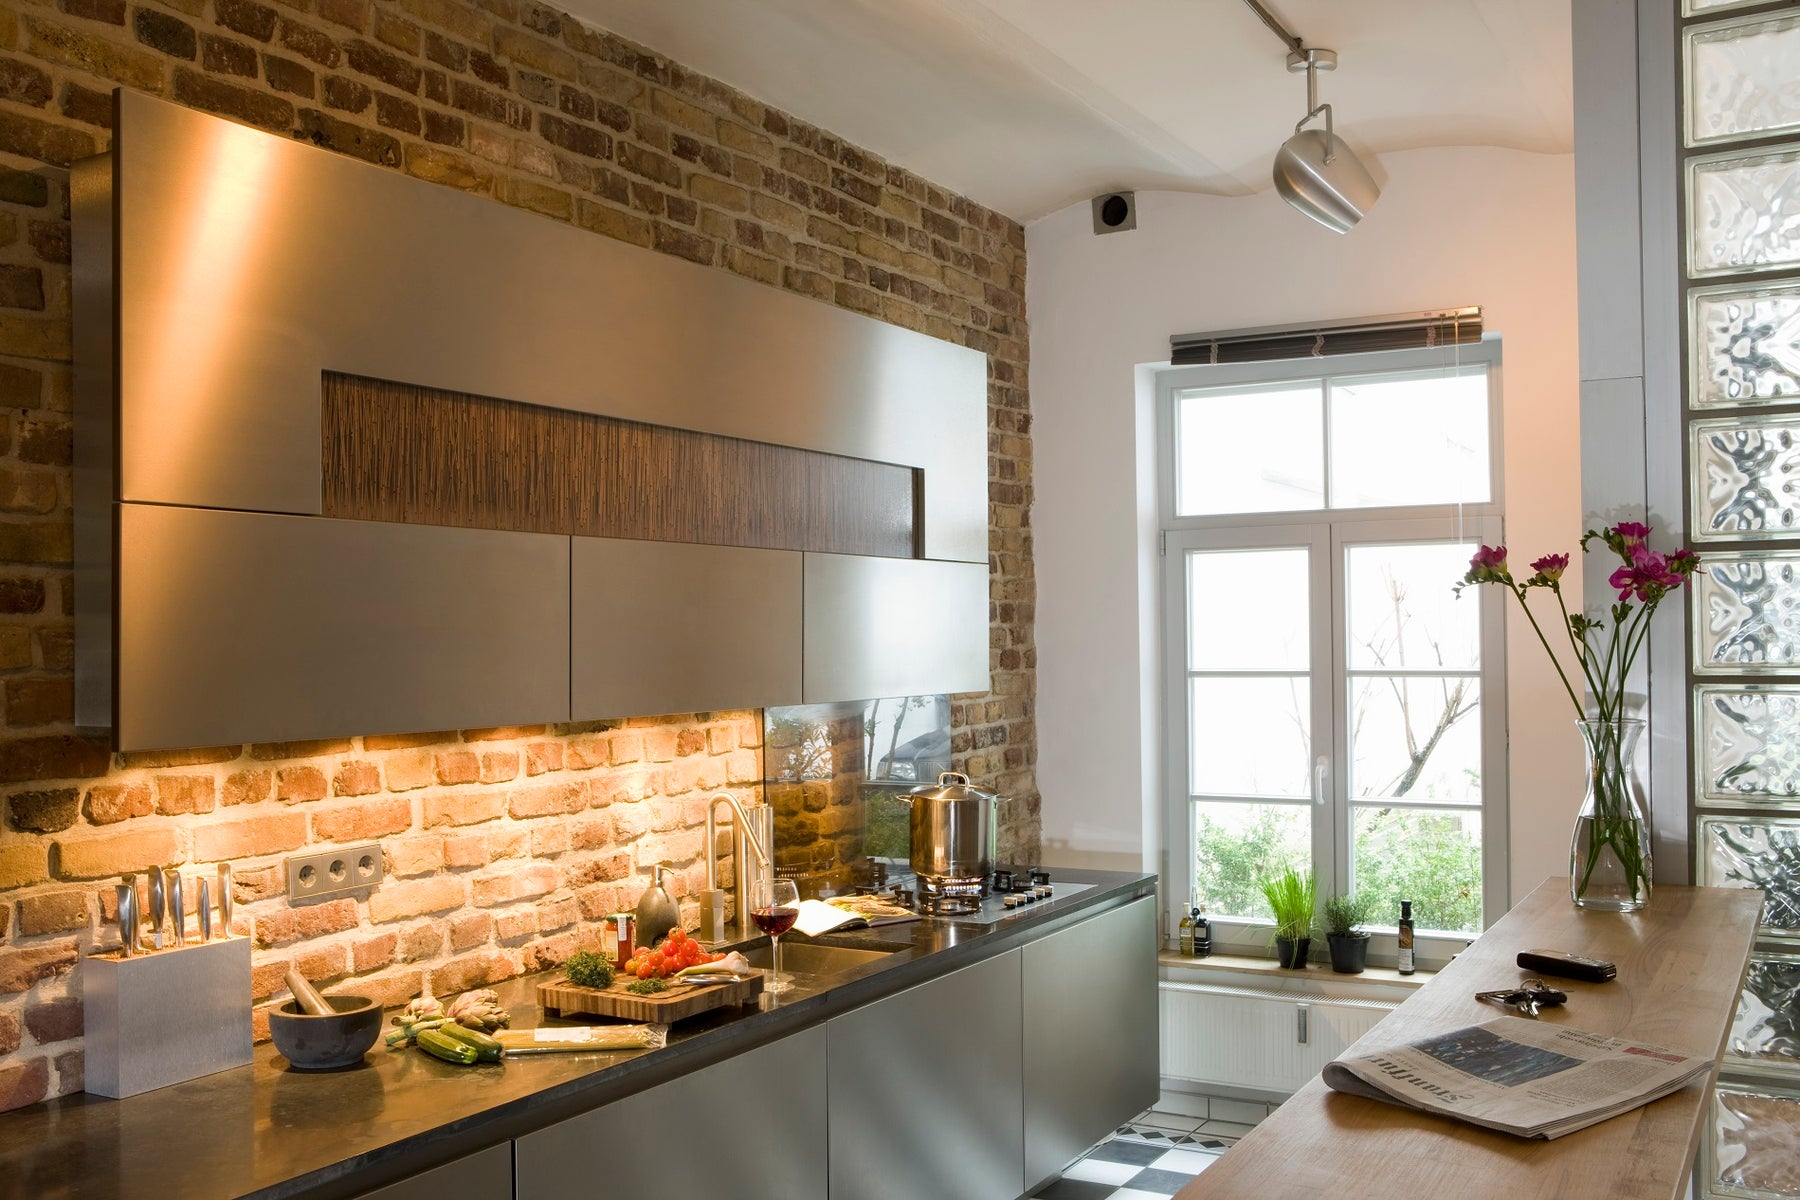 How To Choose Lighting For A Room: Kitchen